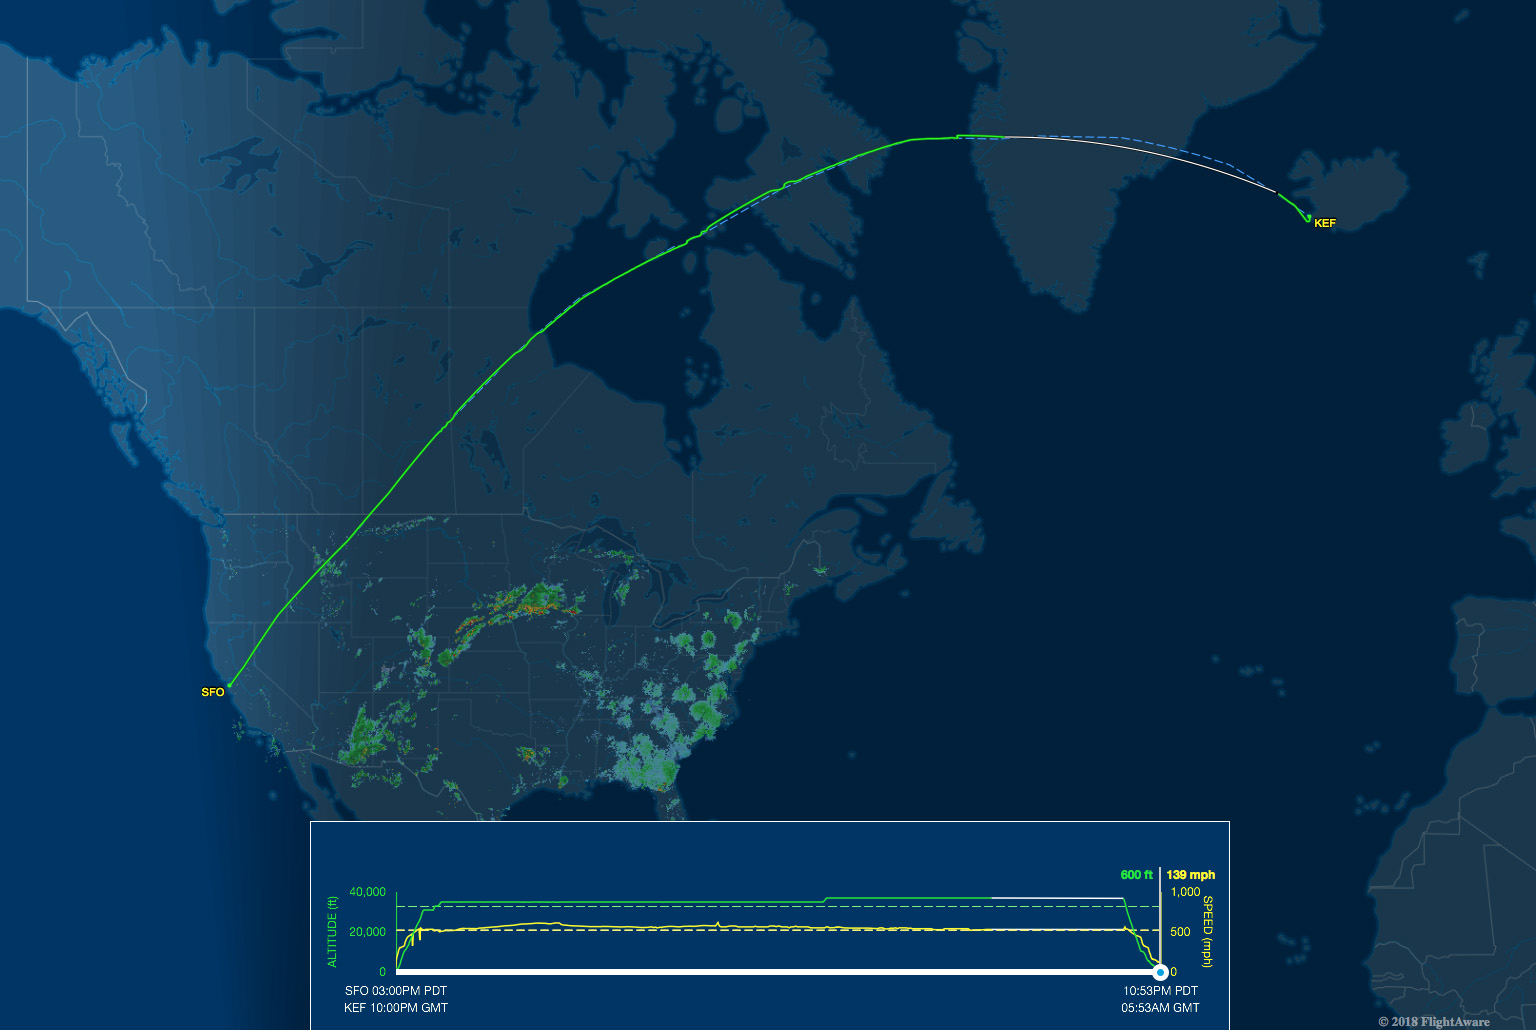 SFO-KEF route map